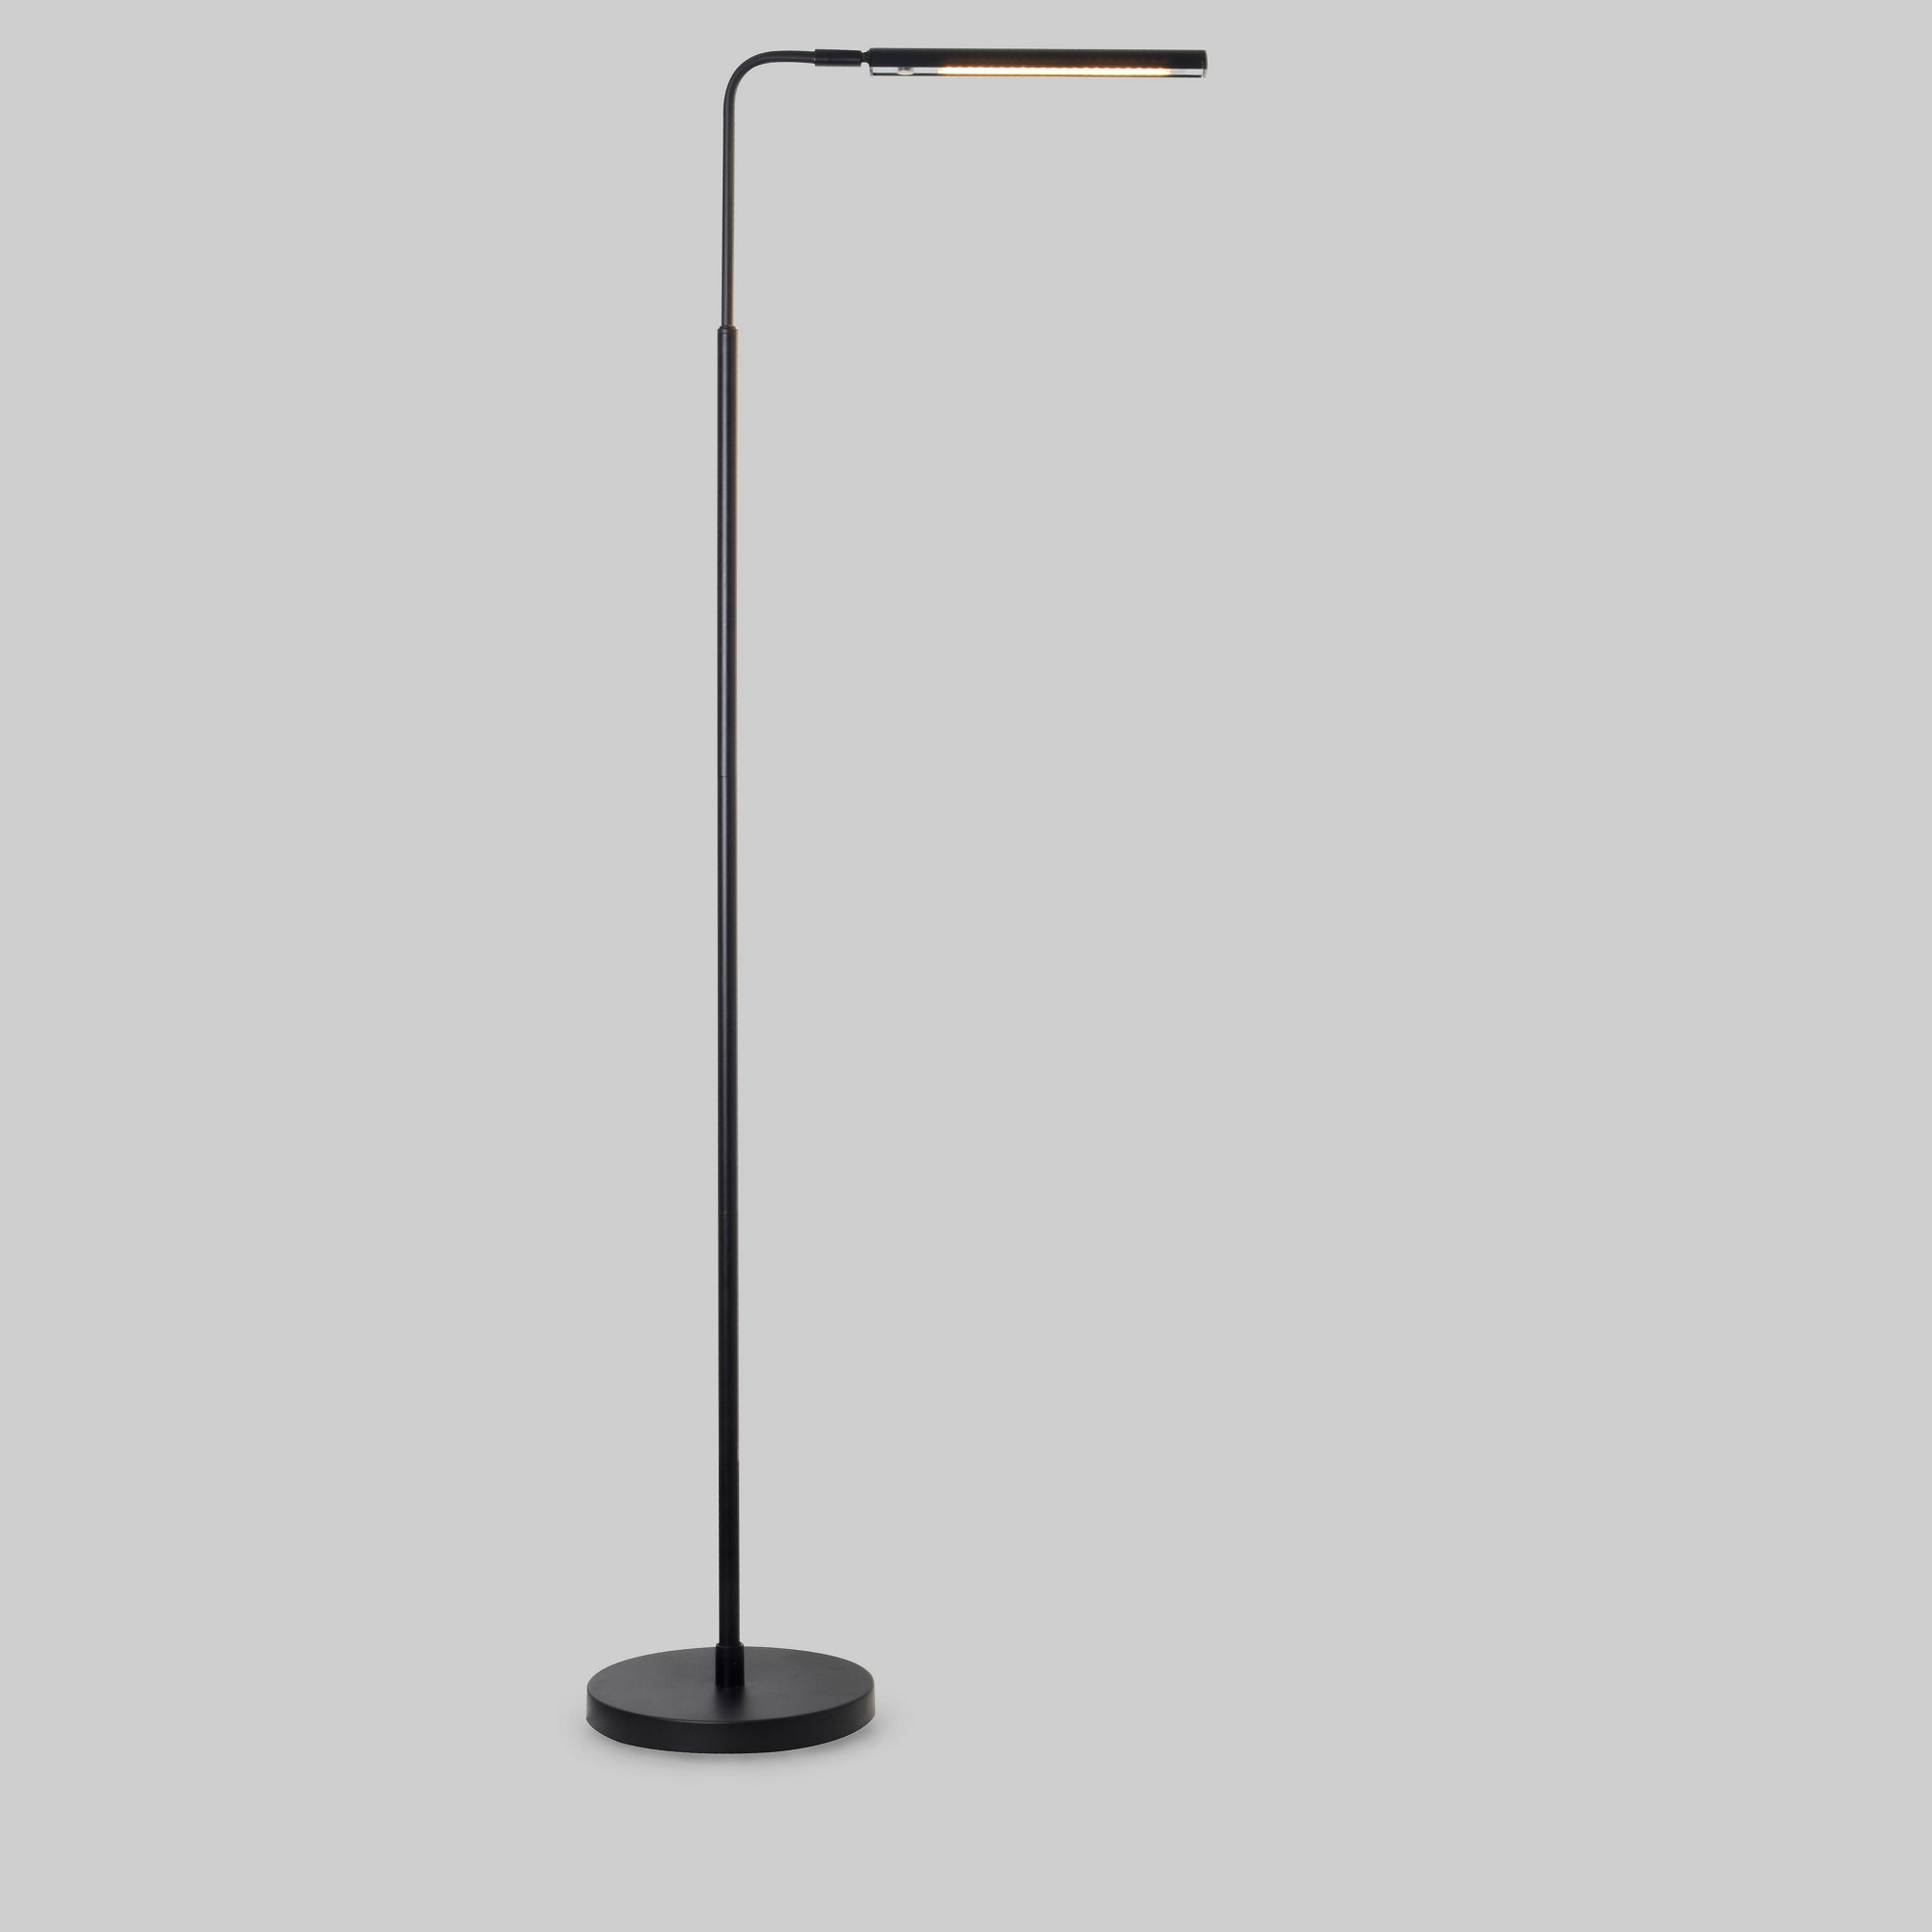 lemke floor lamp black project 62 products pinterest floor rh pinterest co uk